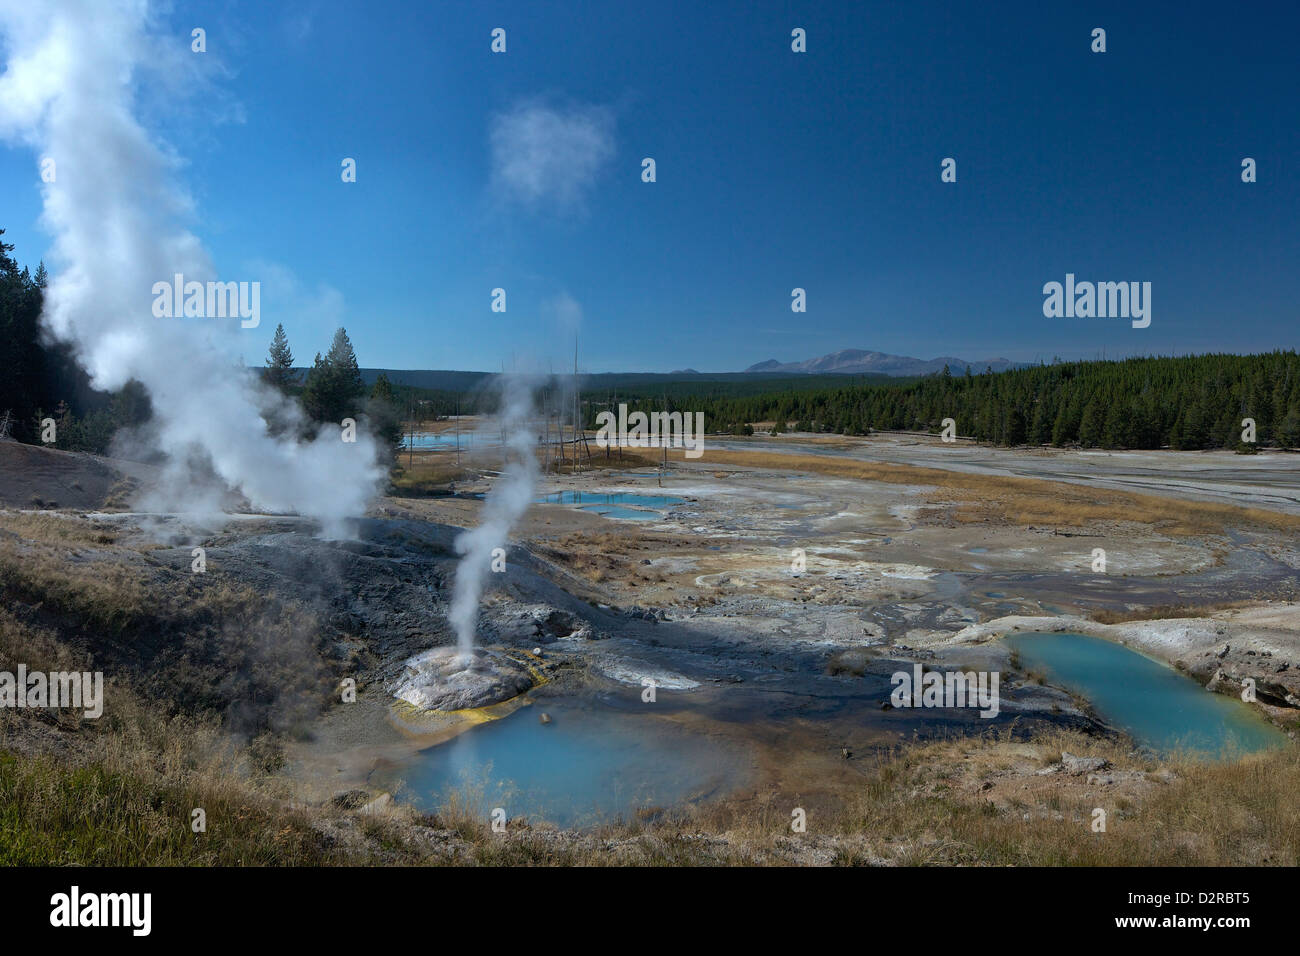 Fumarolen (Dampfdüsen) in Porzellan-Becken, Norris Geyser Basin, Yellowstone-Nationalpark, Wyoming, USA Stockbild